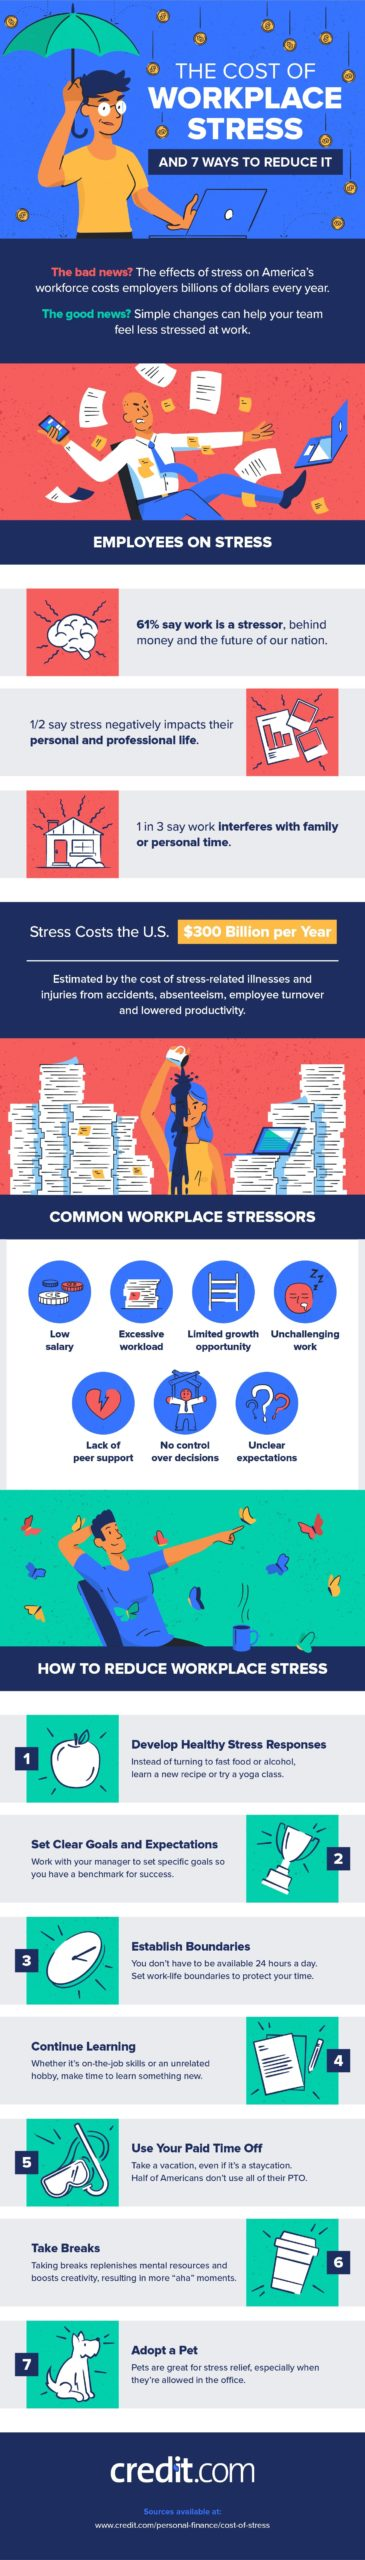 How to Reduce Workplace Stress Image